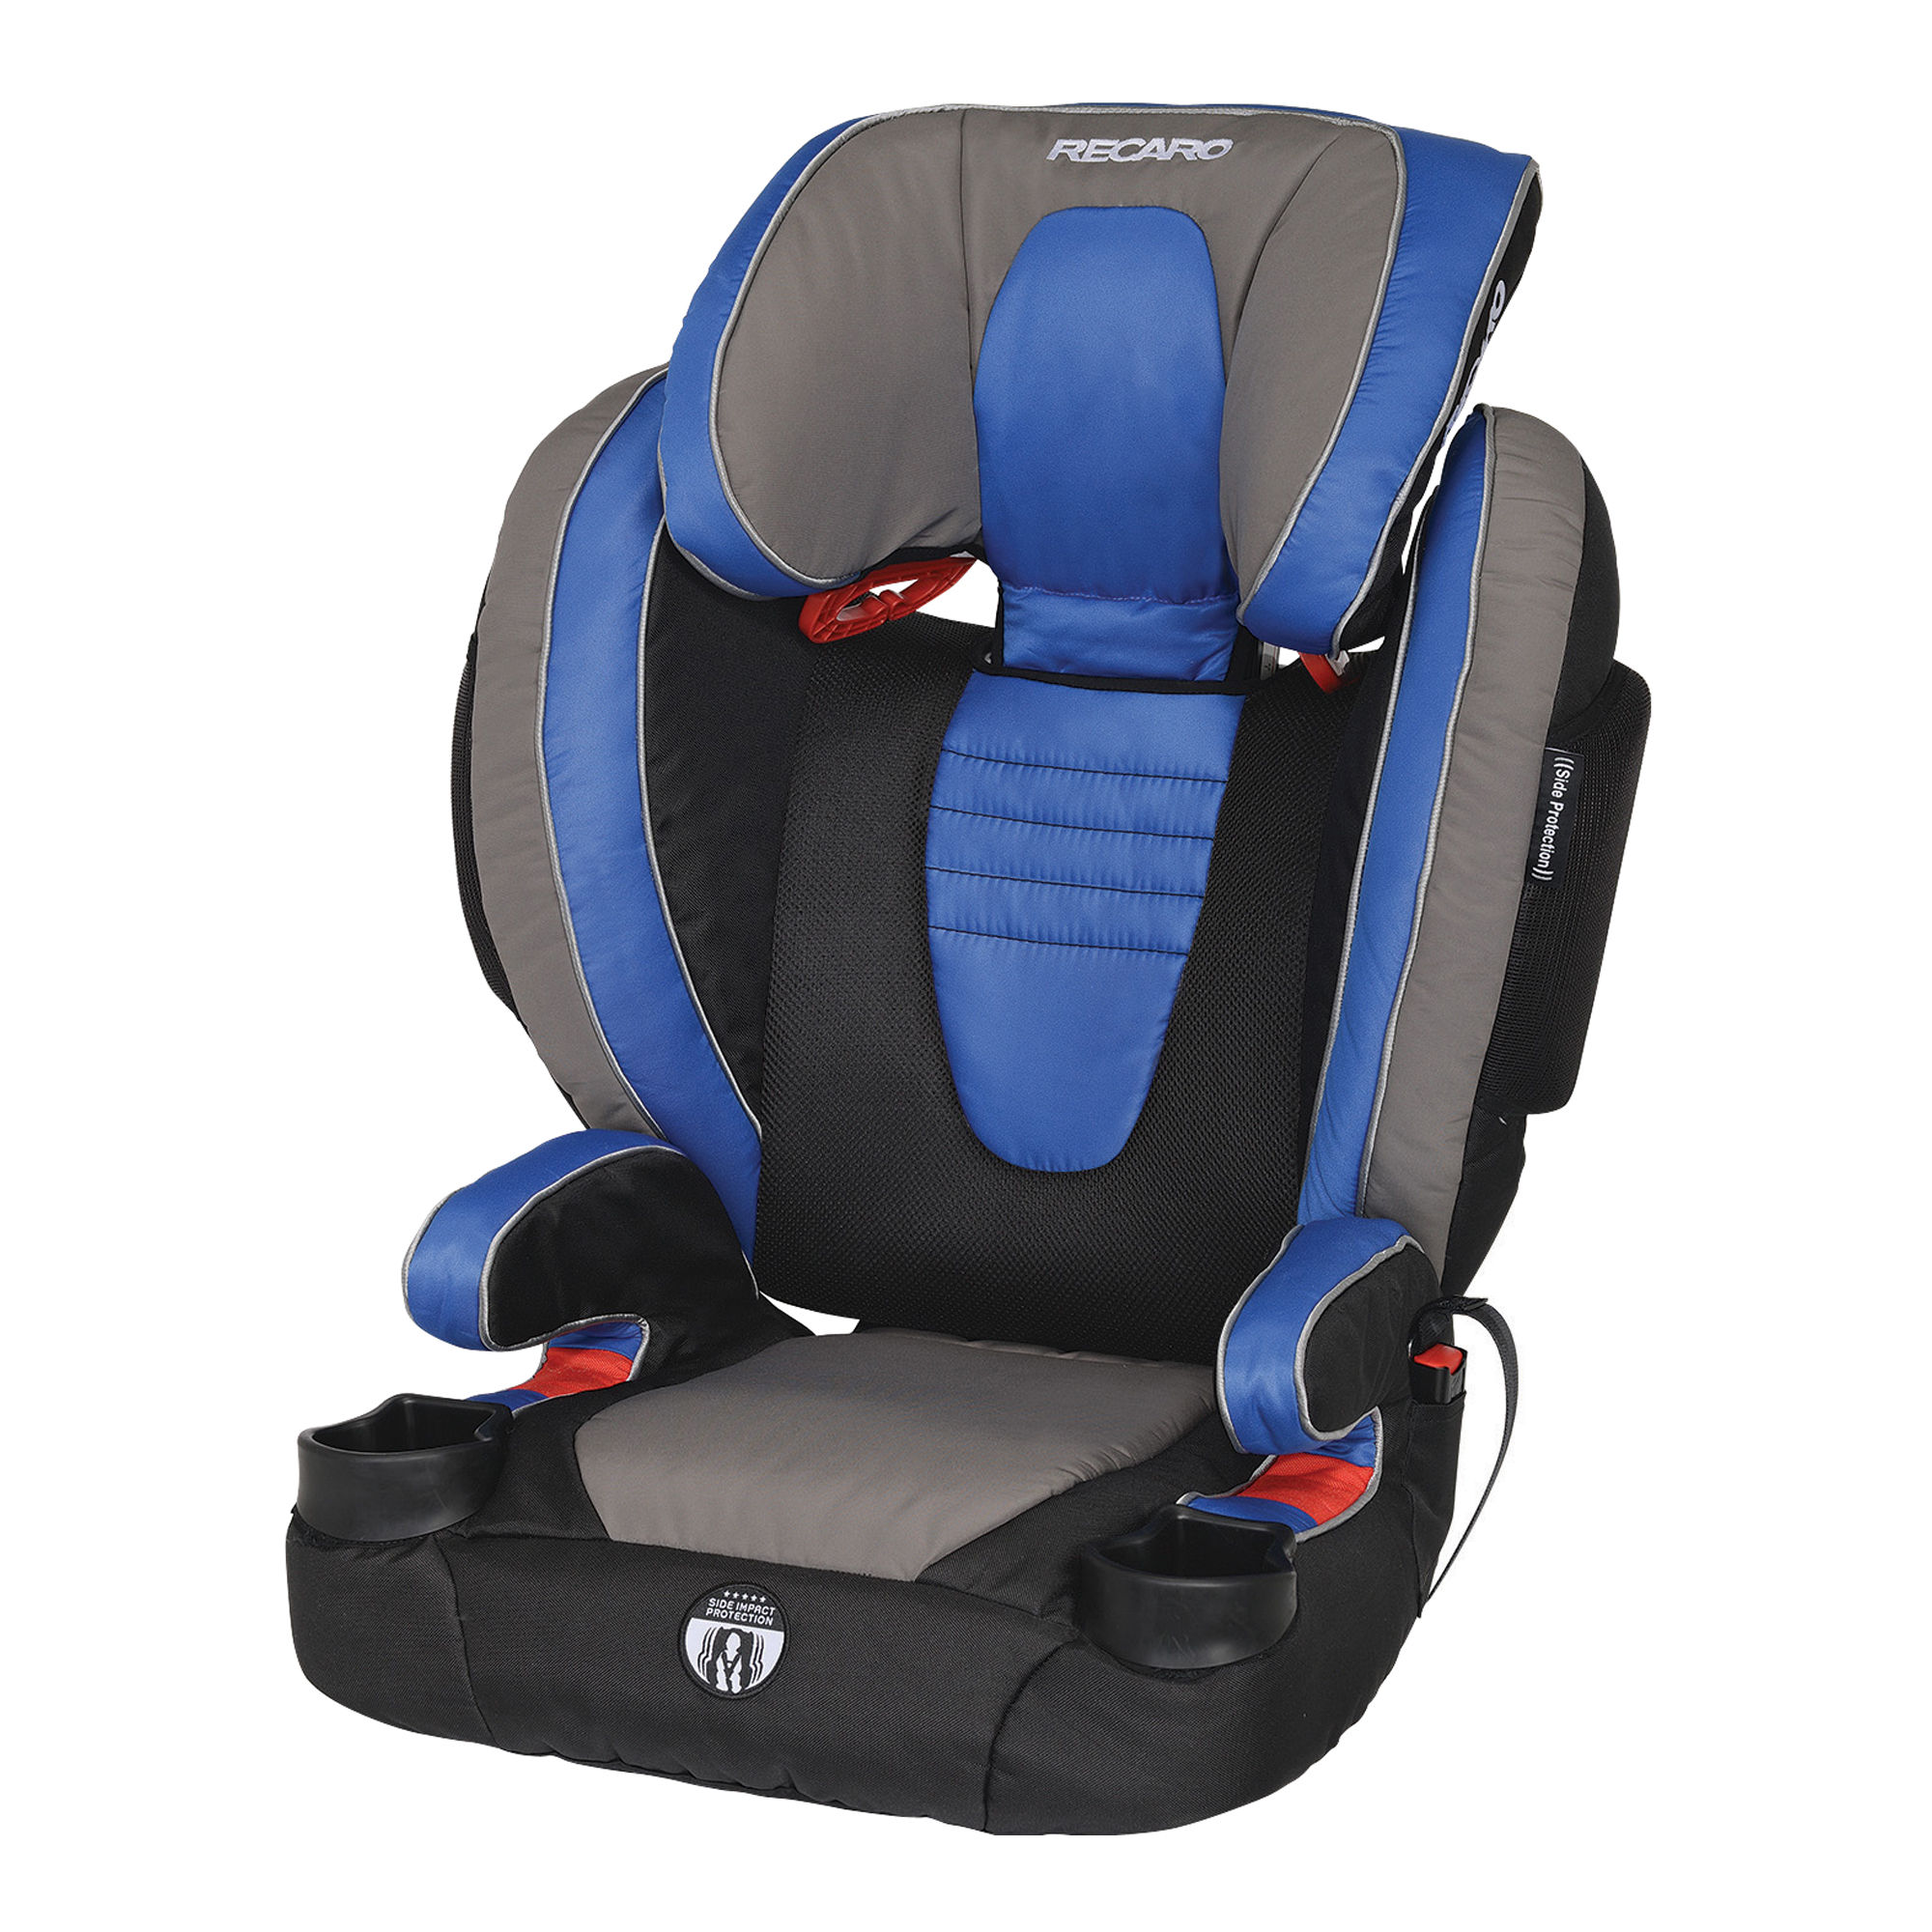 Recaro Performance High-Back Booster Car Seat - Sapphire